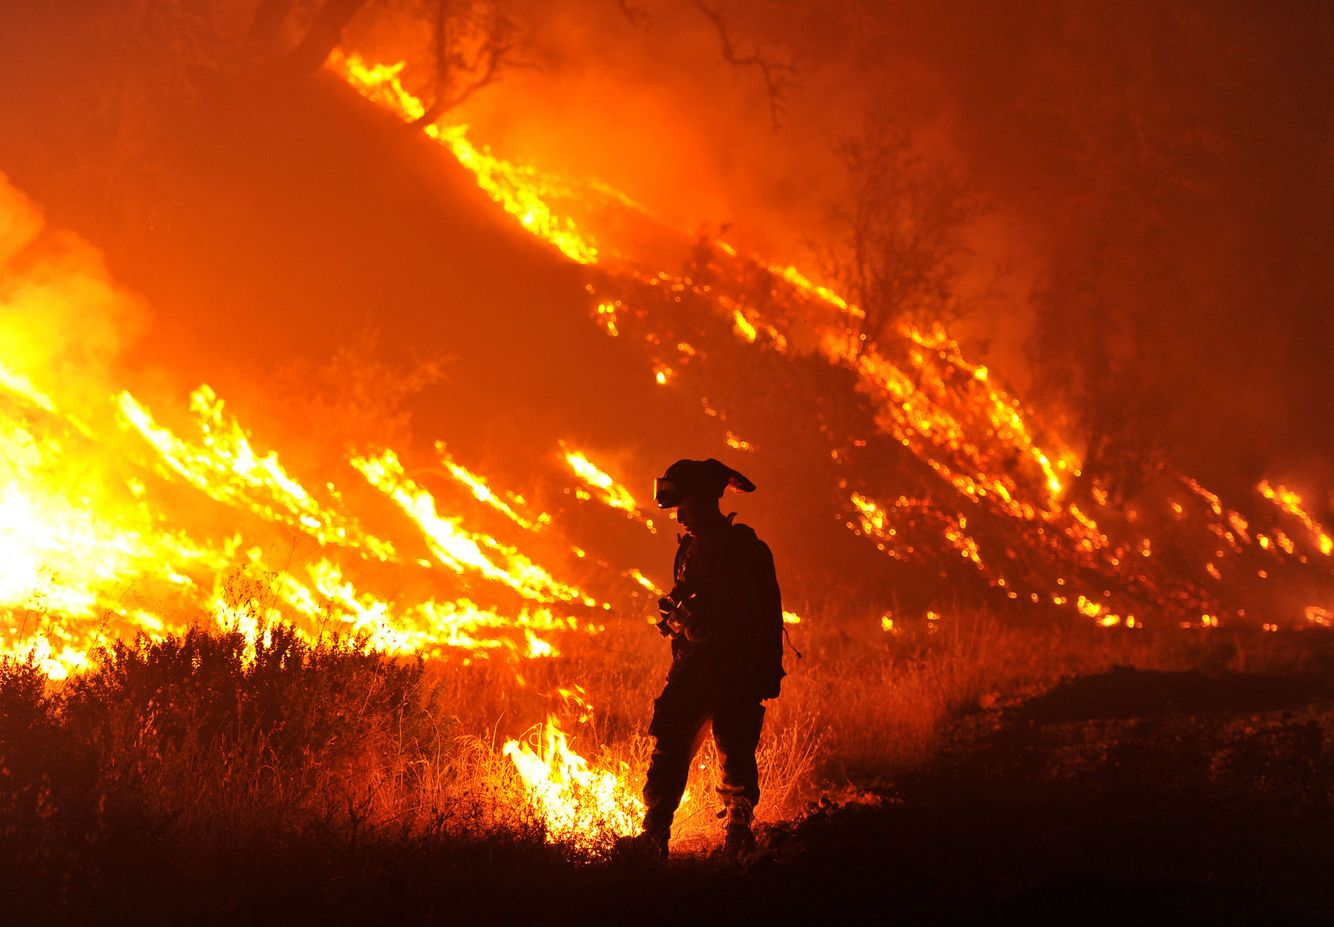 A firefighter pauses while surrounded by flames